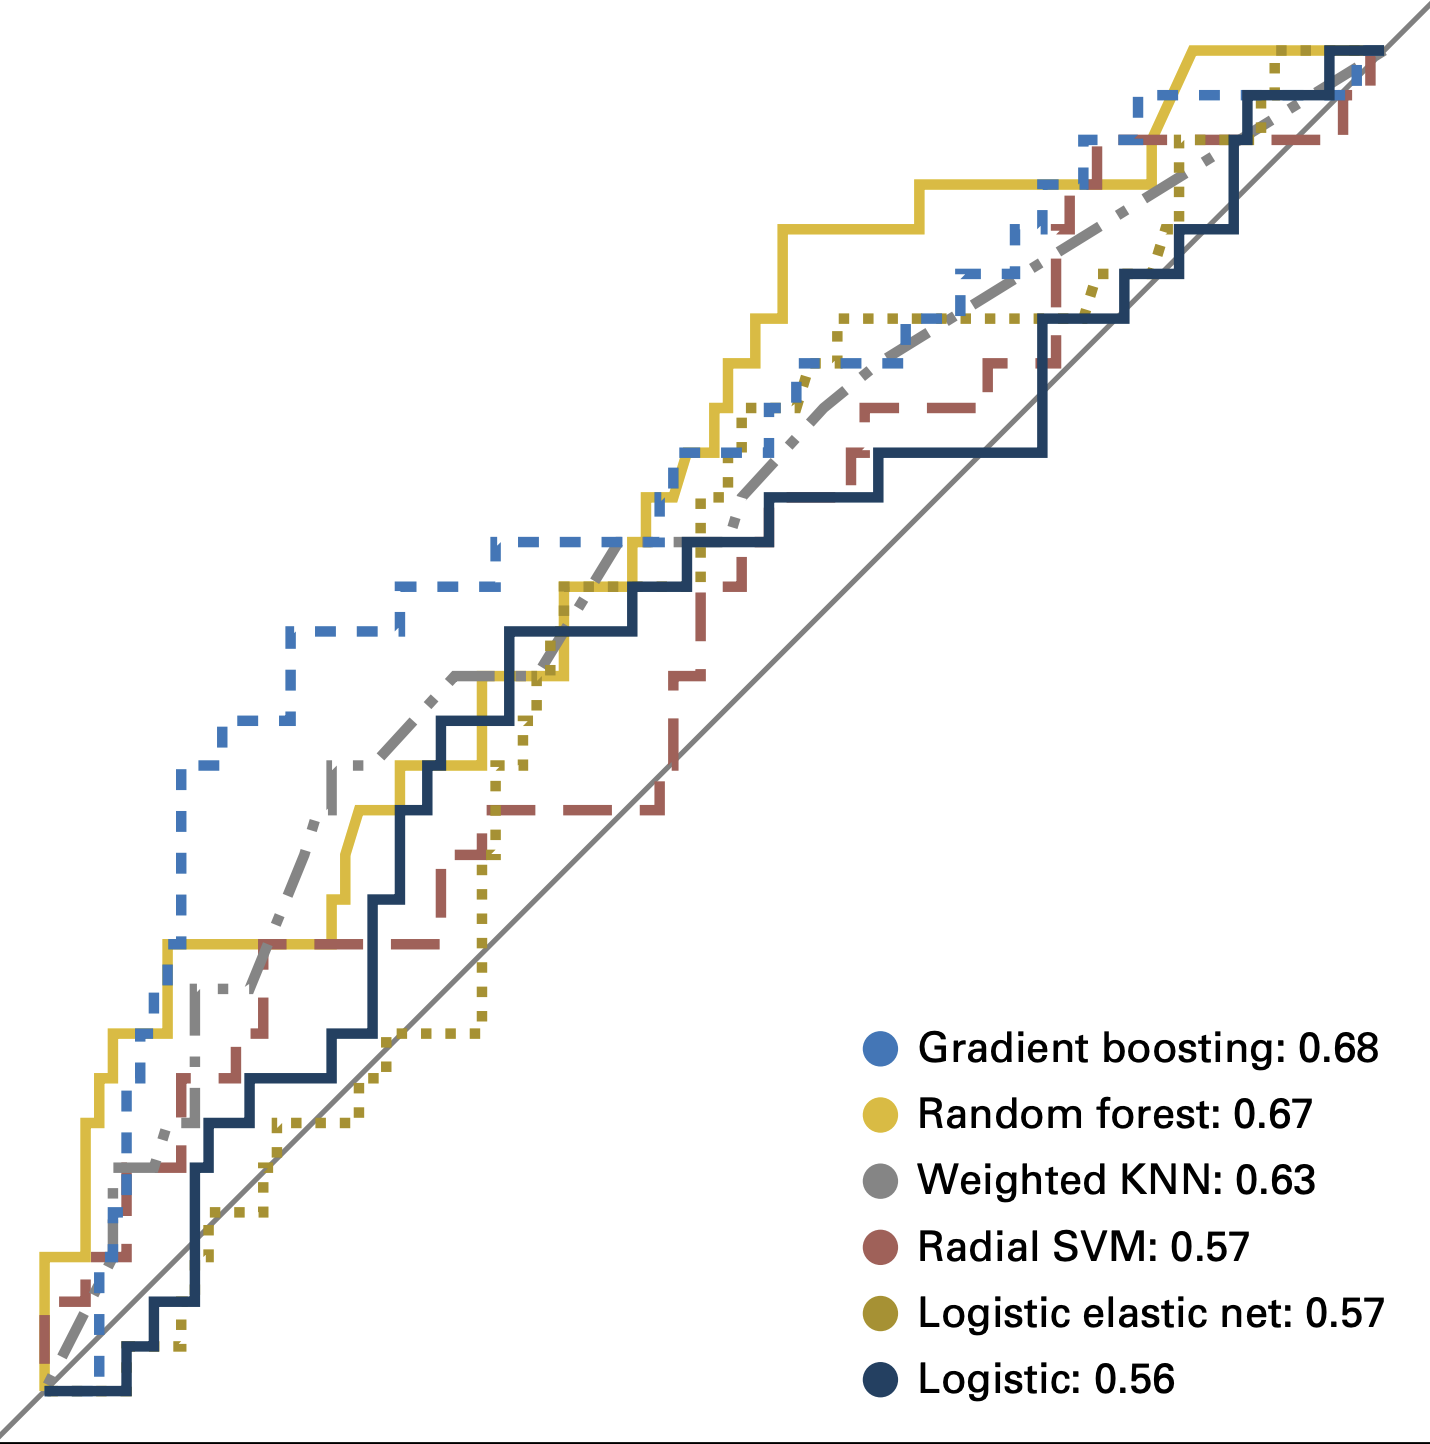 Atypical Ductal Hyperplasia Upgrade Prediction - [paper]